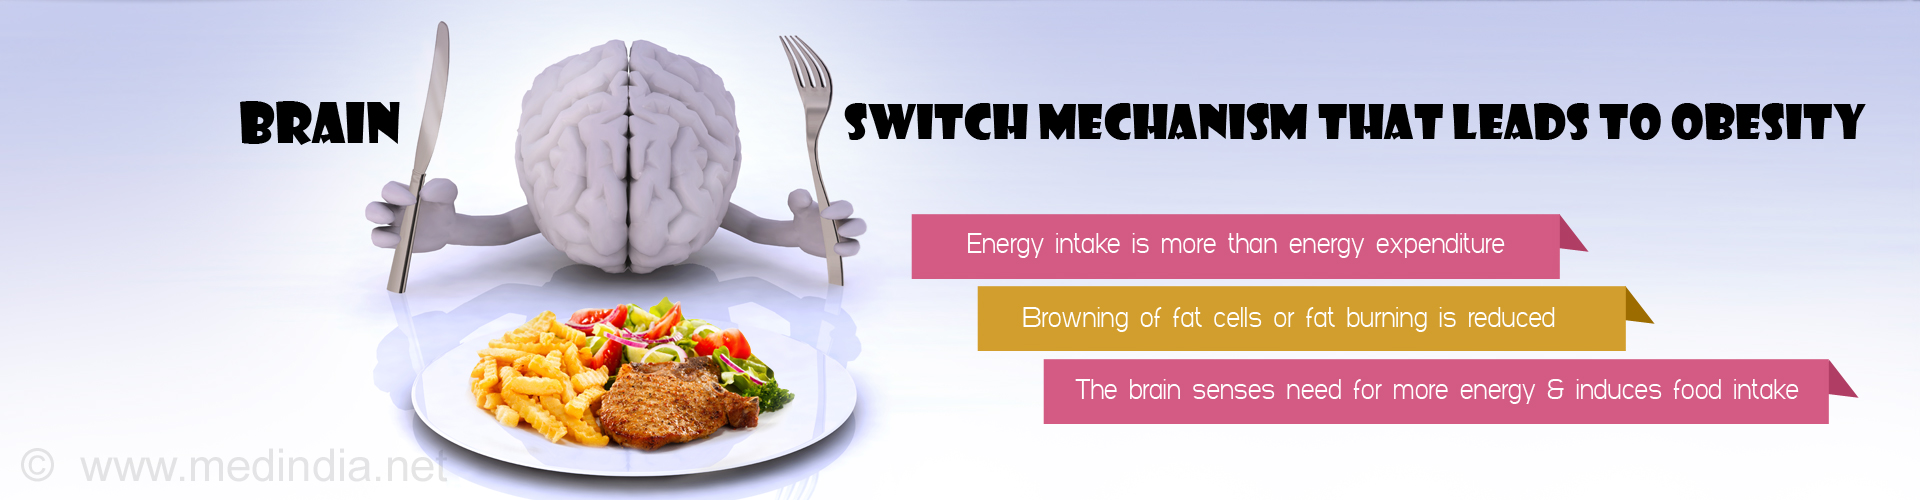 brain switch mechanism that leads to obesity - energy intake is more than energy expenditure - browning of fate cells or fat burning is reduced - the brain senses need for more energy and induces food intake